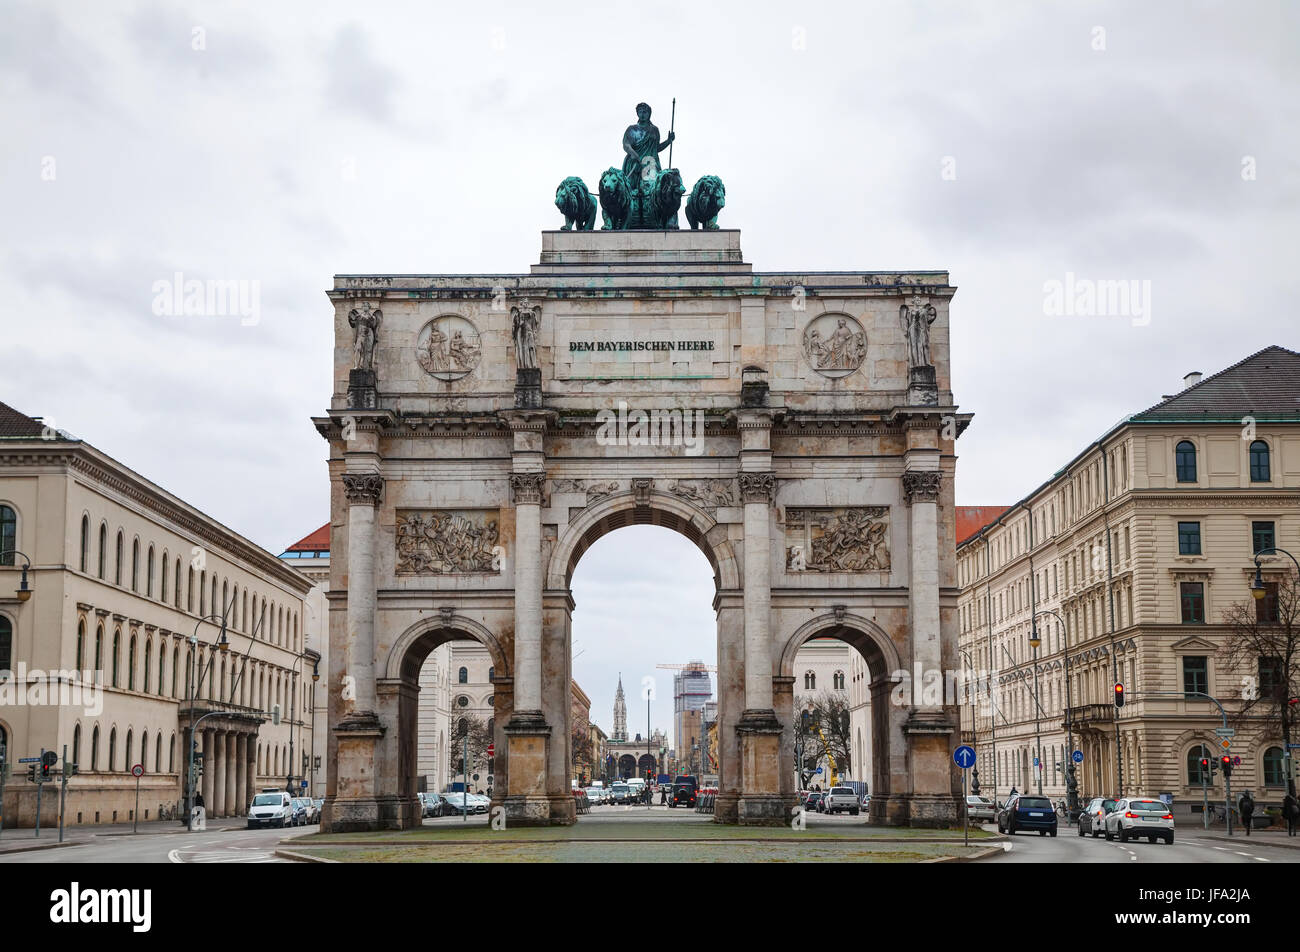 Victory Gate triumphal arch (Siegestor) Stock Photo